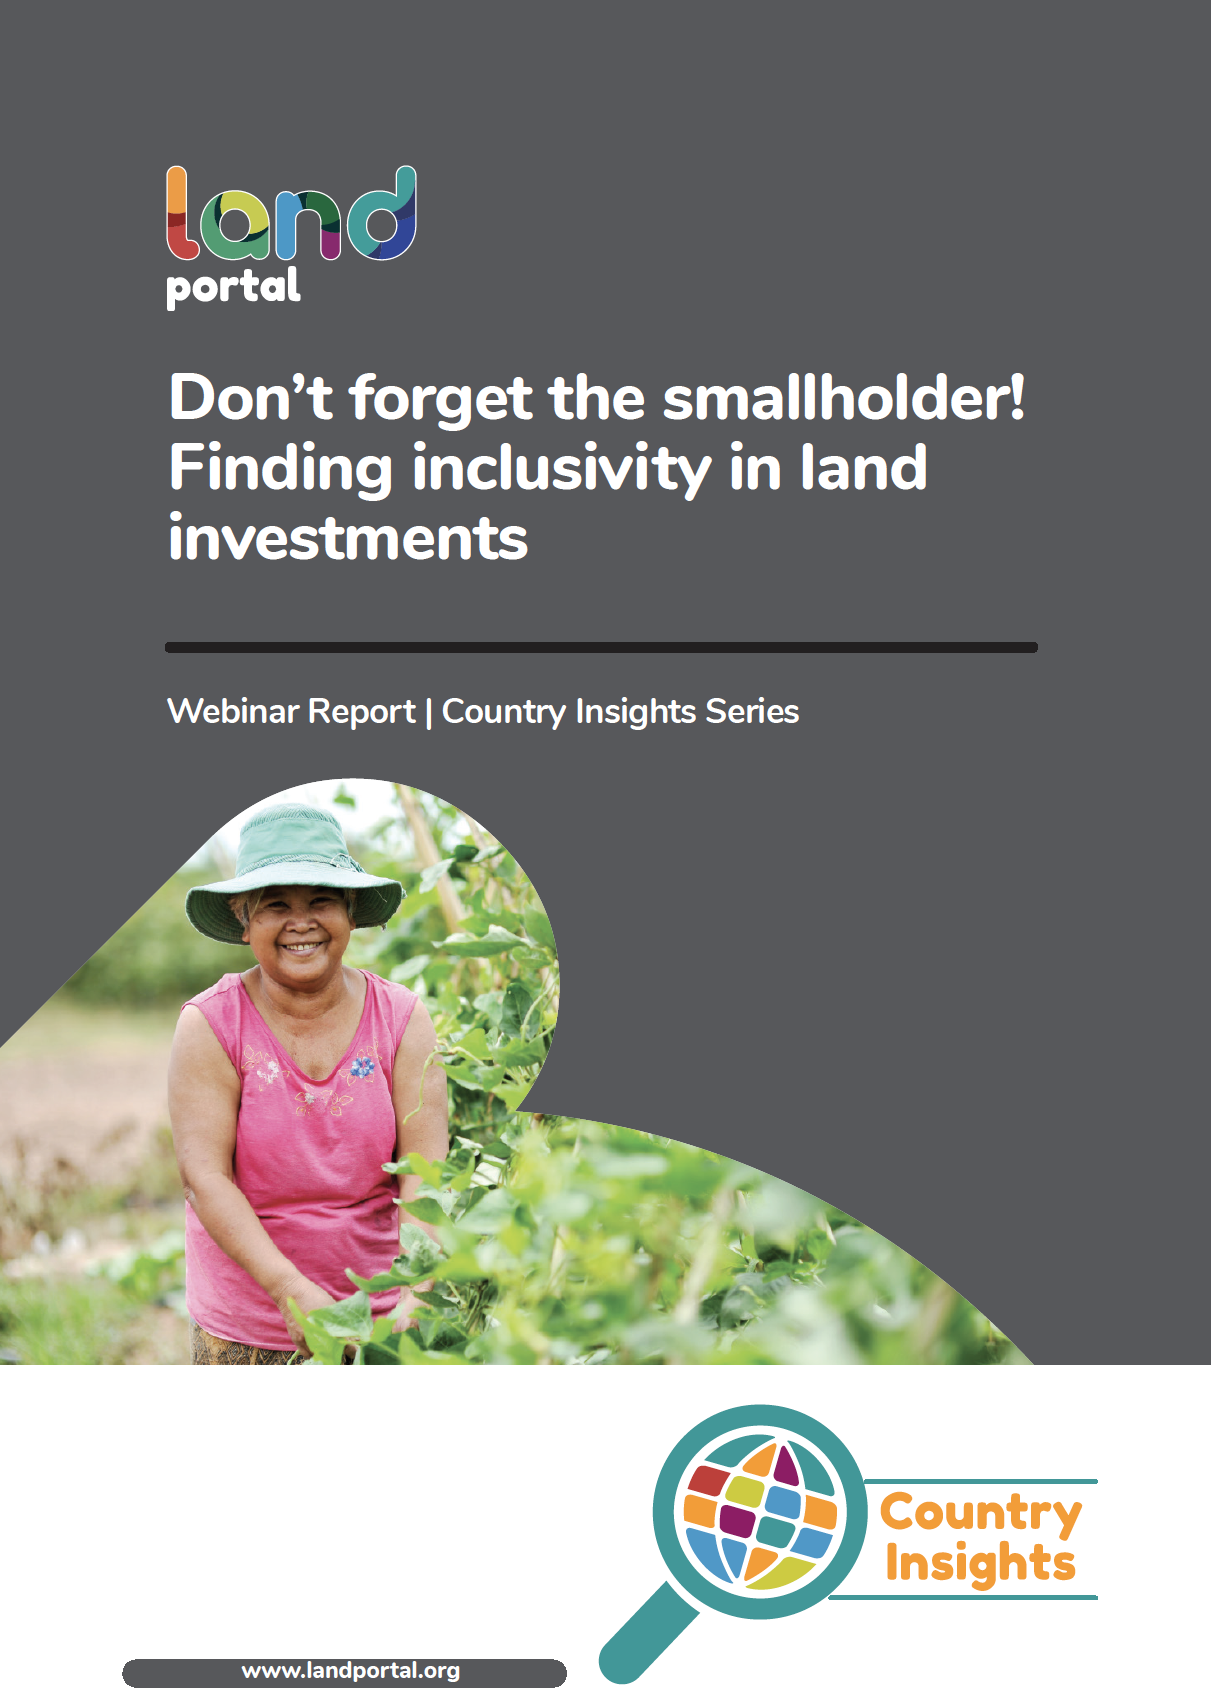 Don't forget the smallholder! Finding inclusivity in land investments